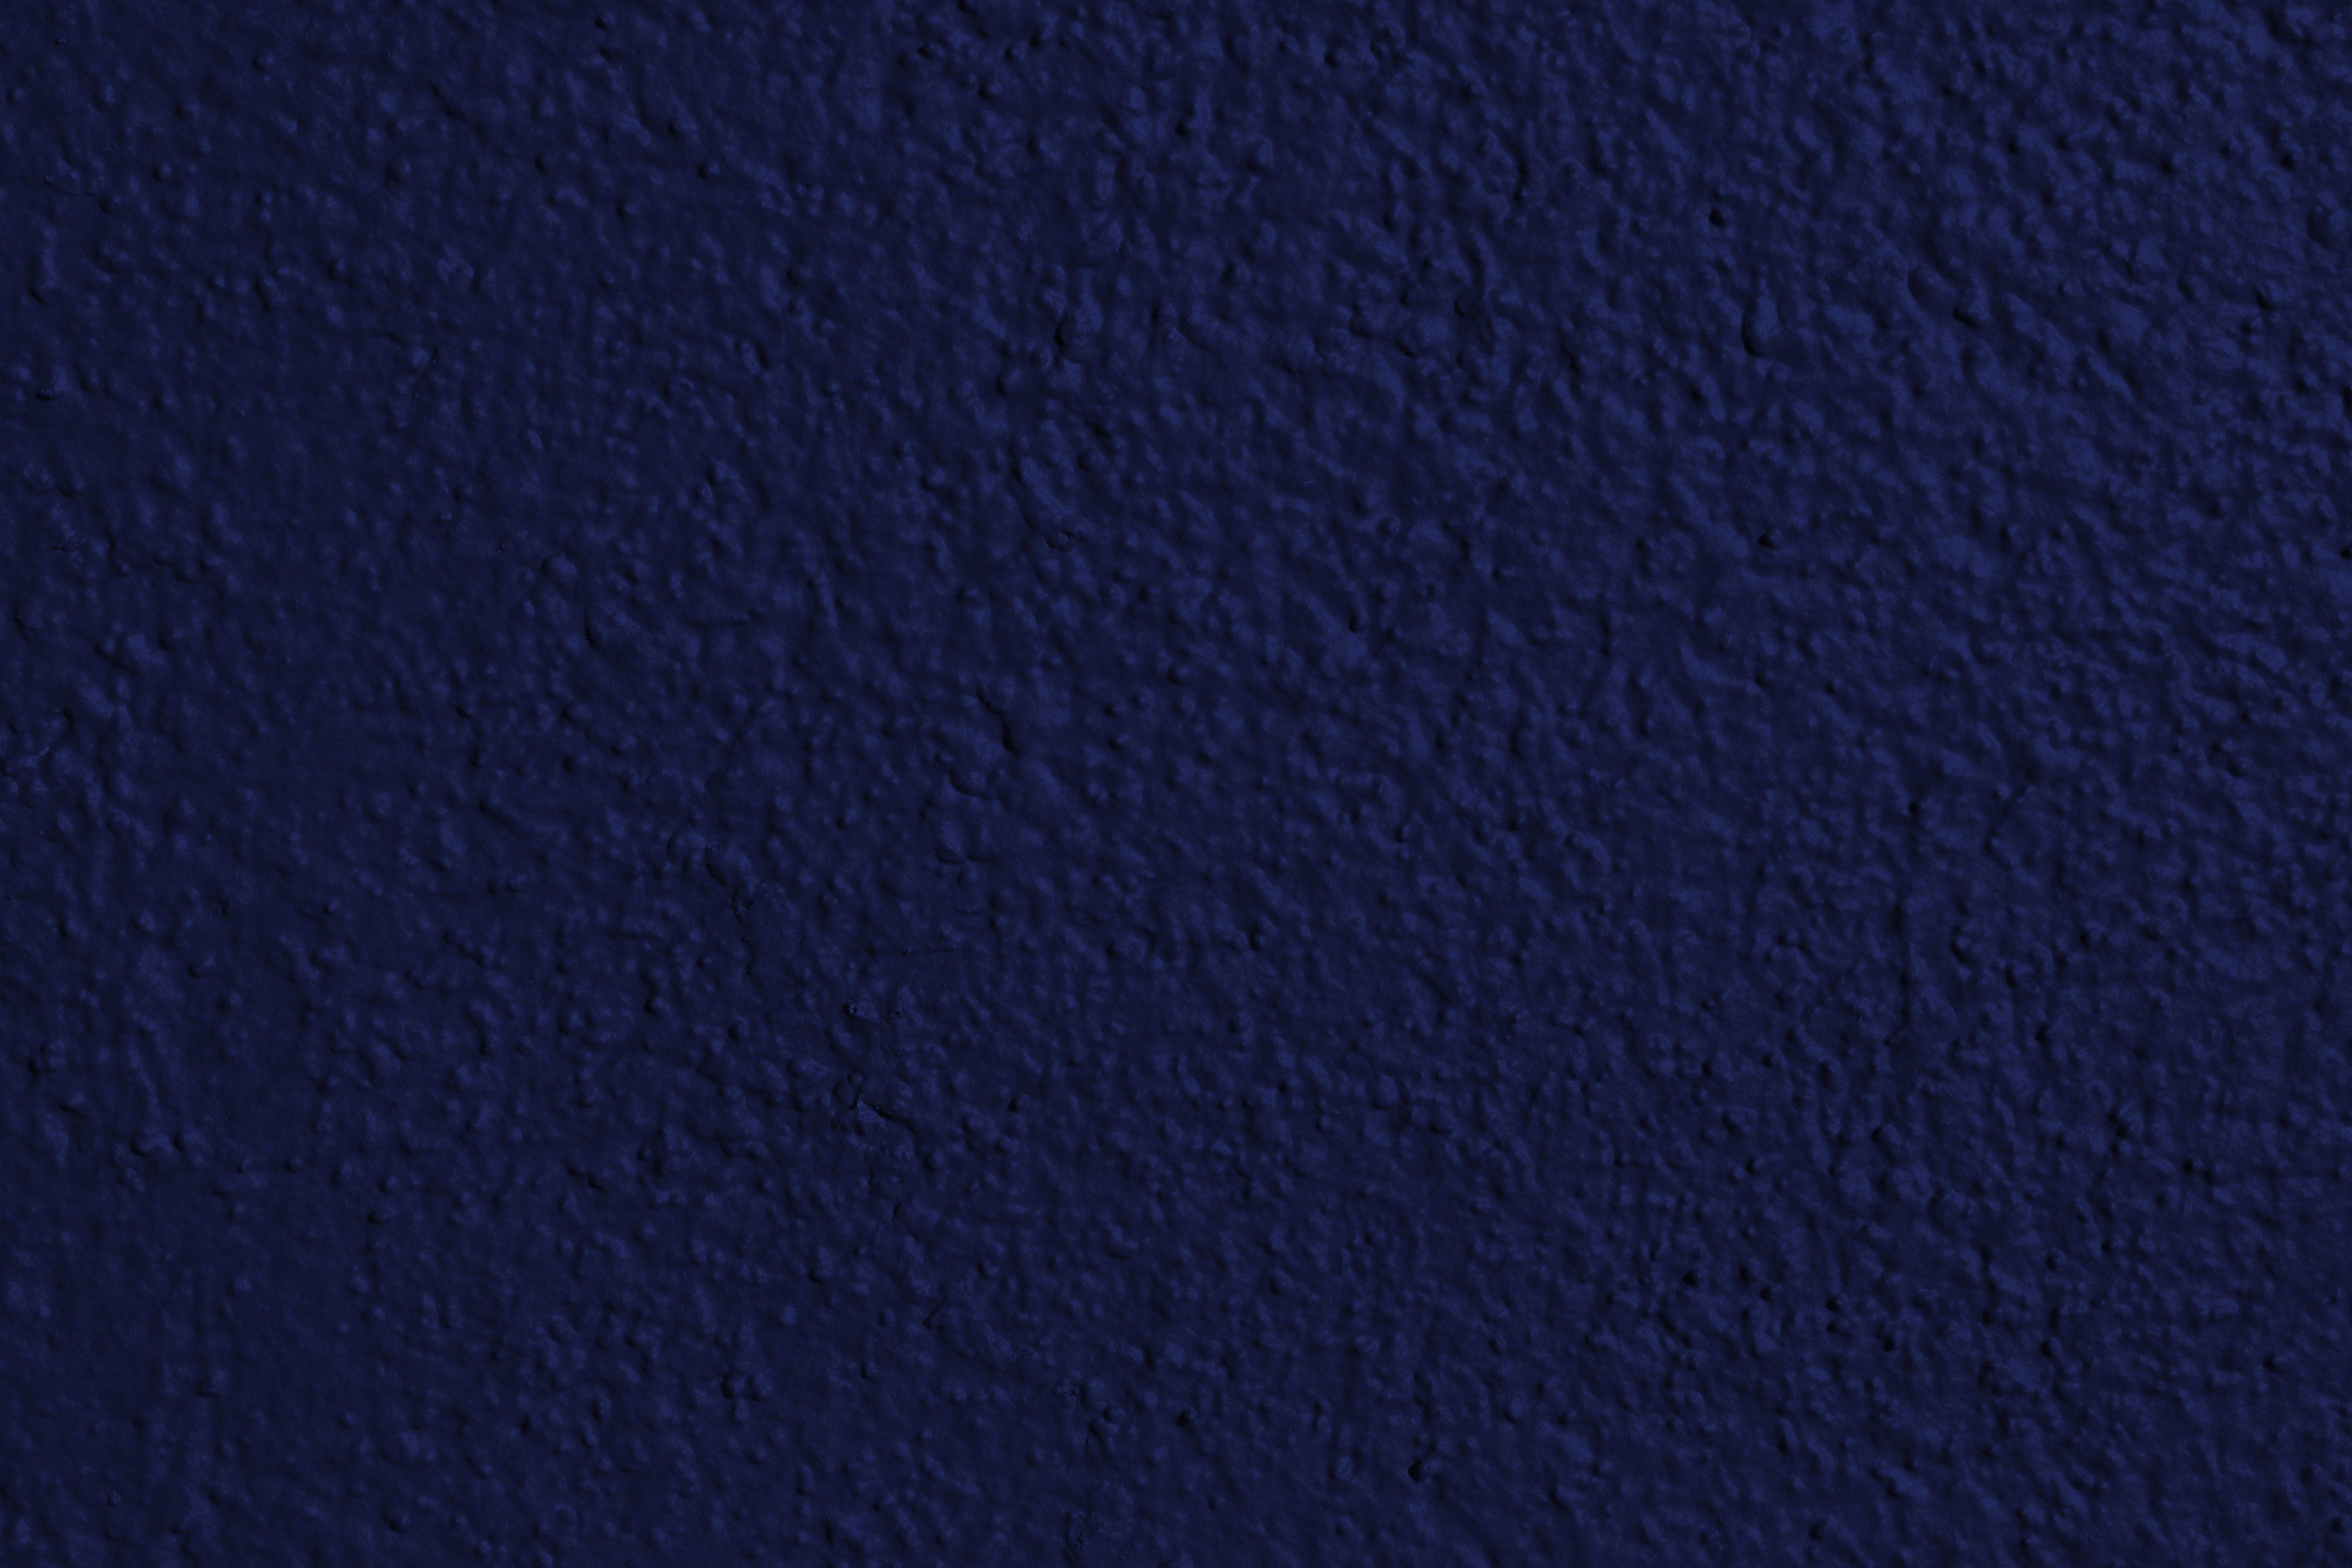 Navy Blue Painted Wall Texture Navy Blue Walls Blue Texture Blue Texture Background